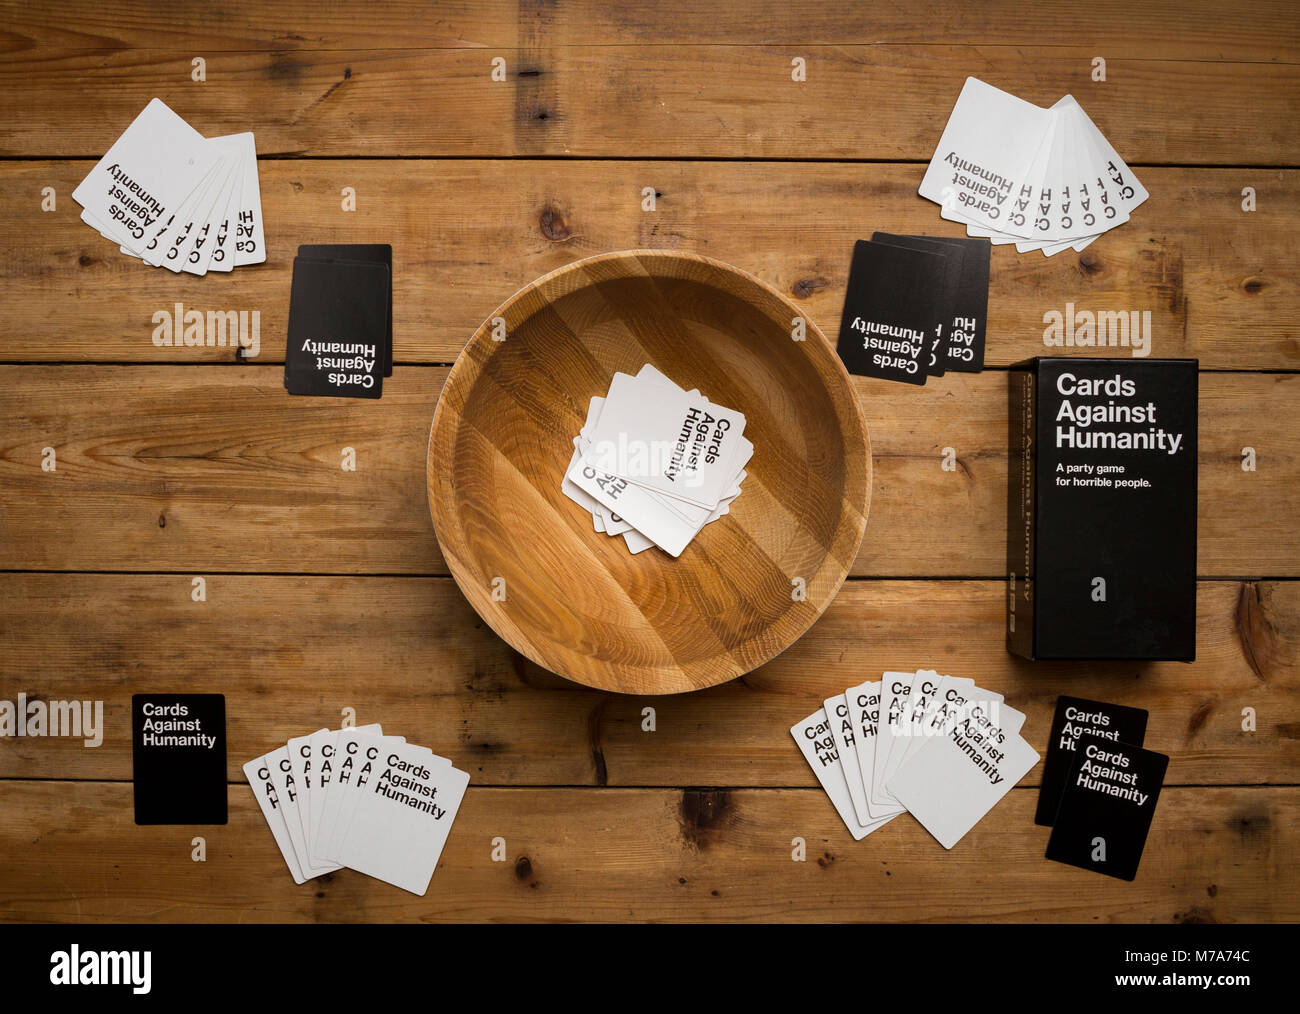 Cards Against Humanity, A party game for horrible people, displayed on a wooden table - Stock Image